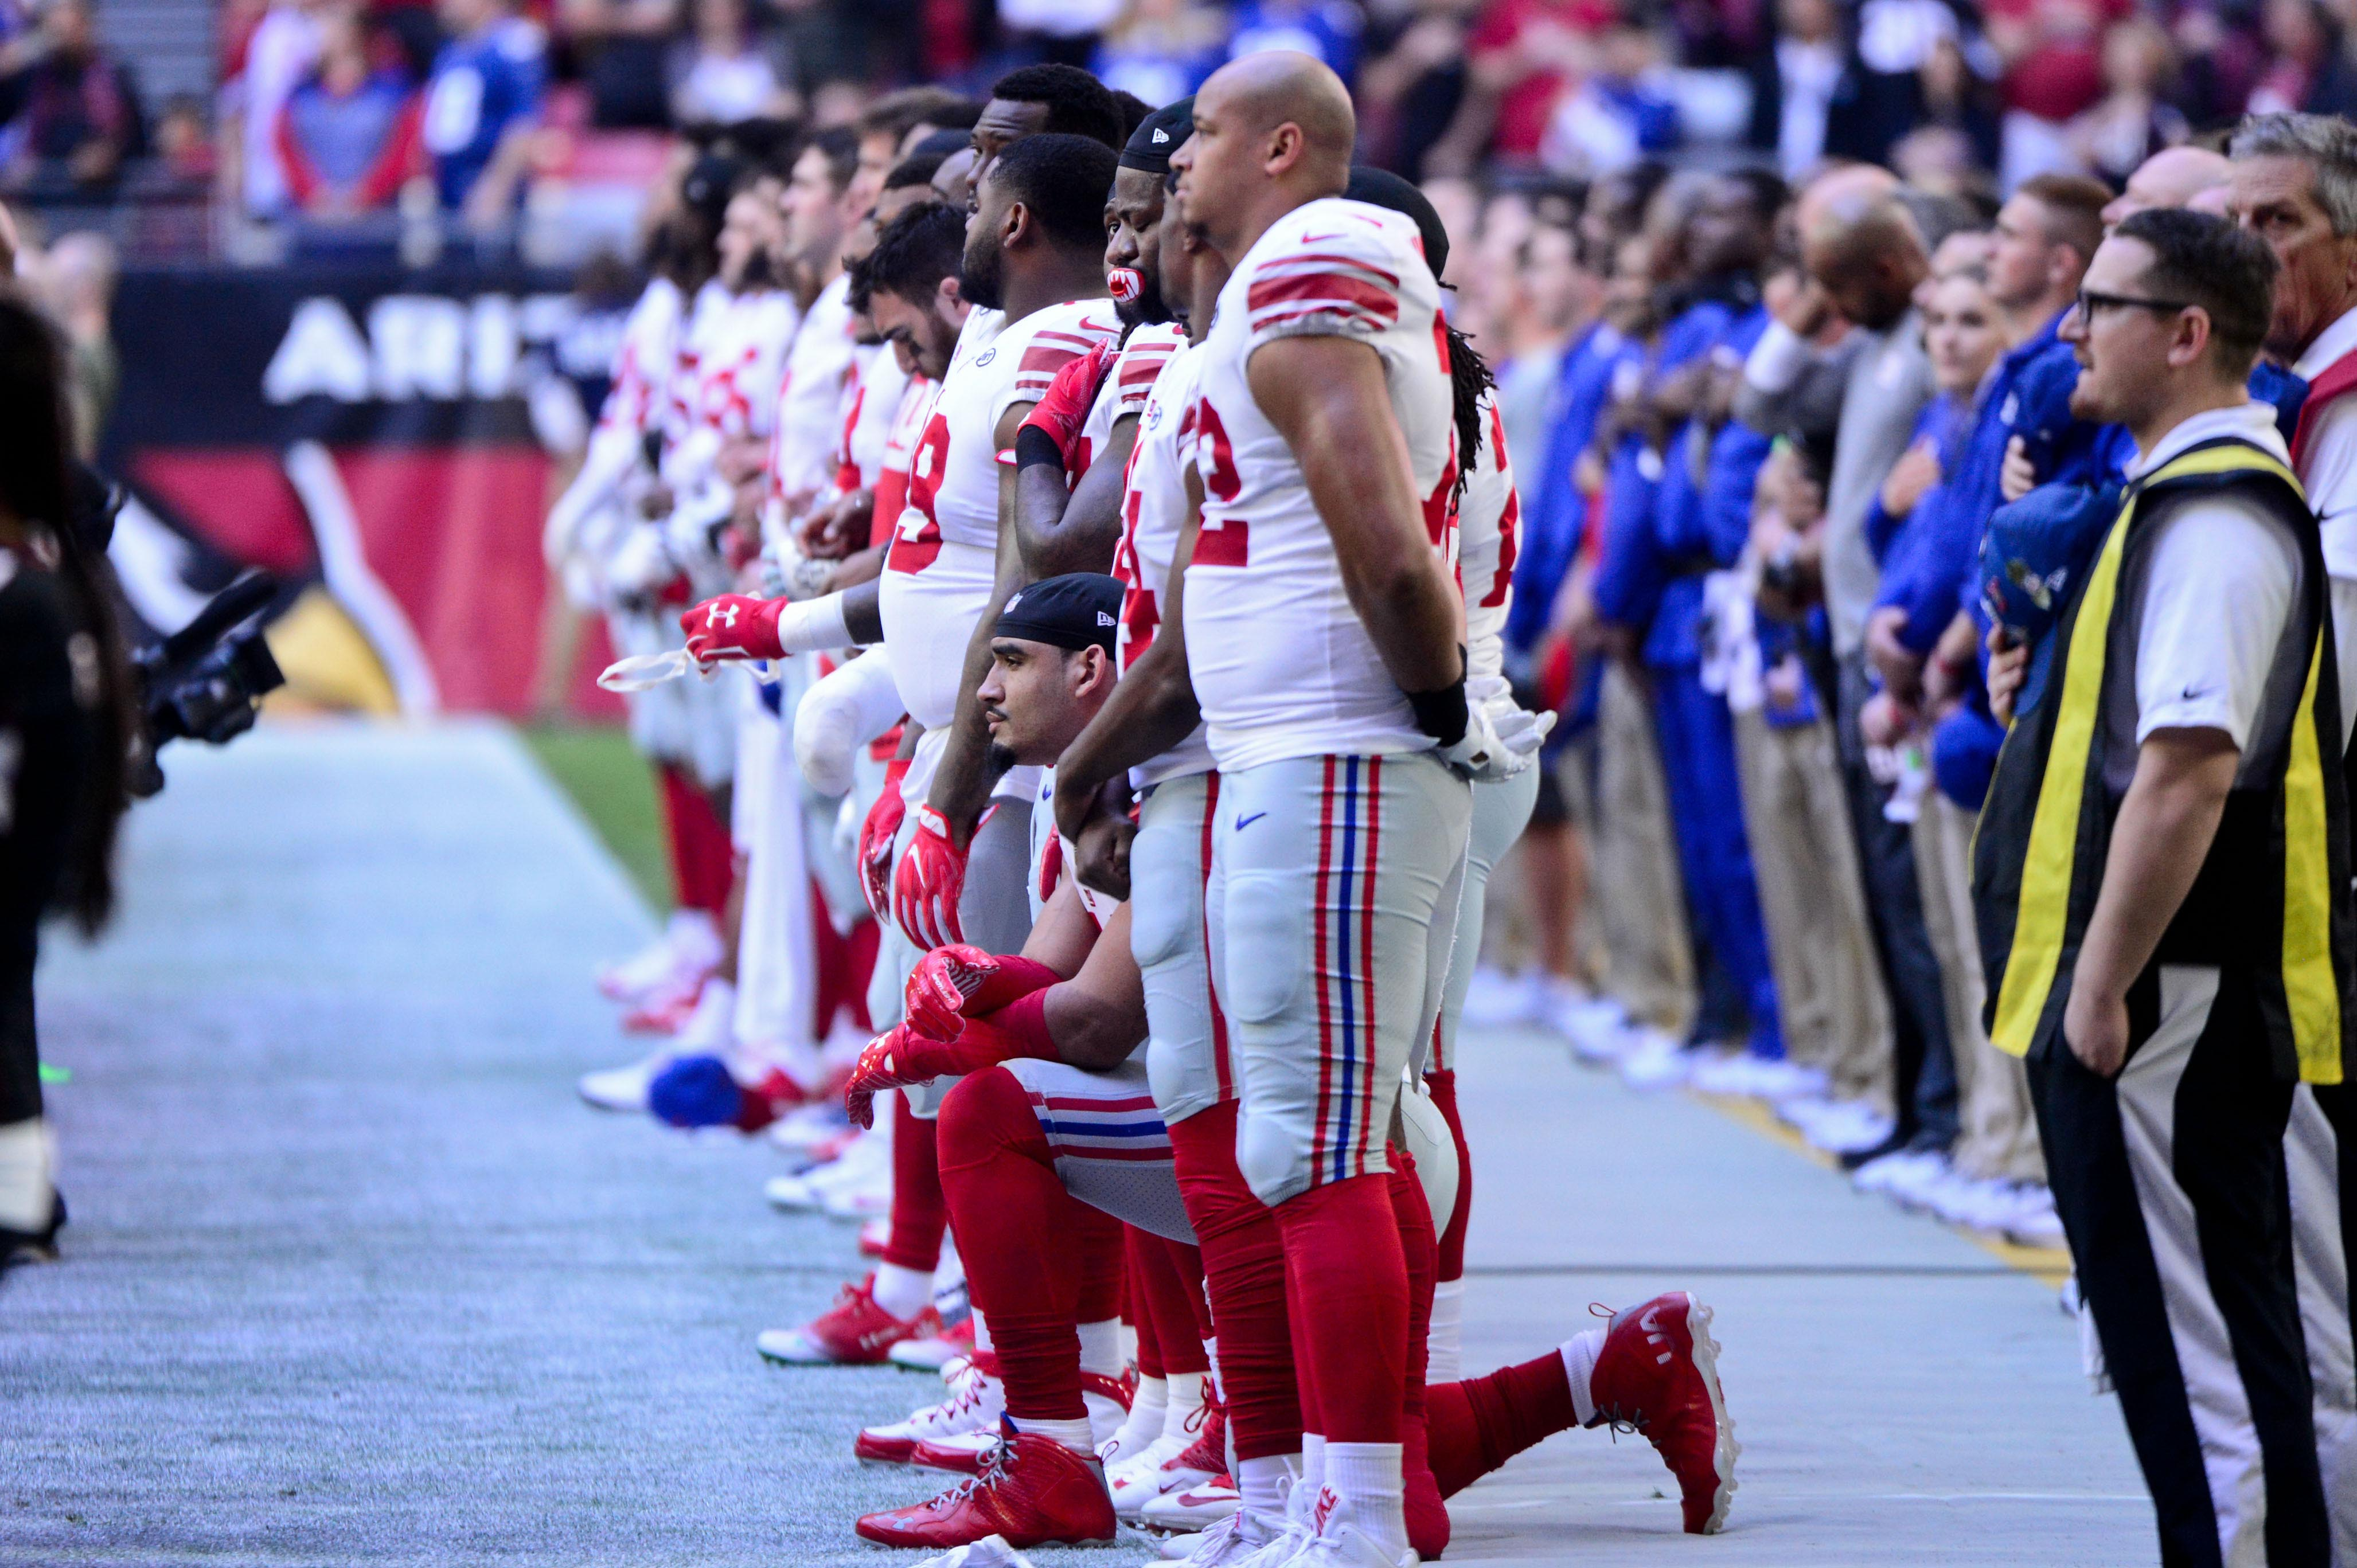 NFLPA files grievance challenging league's new national anthem policy